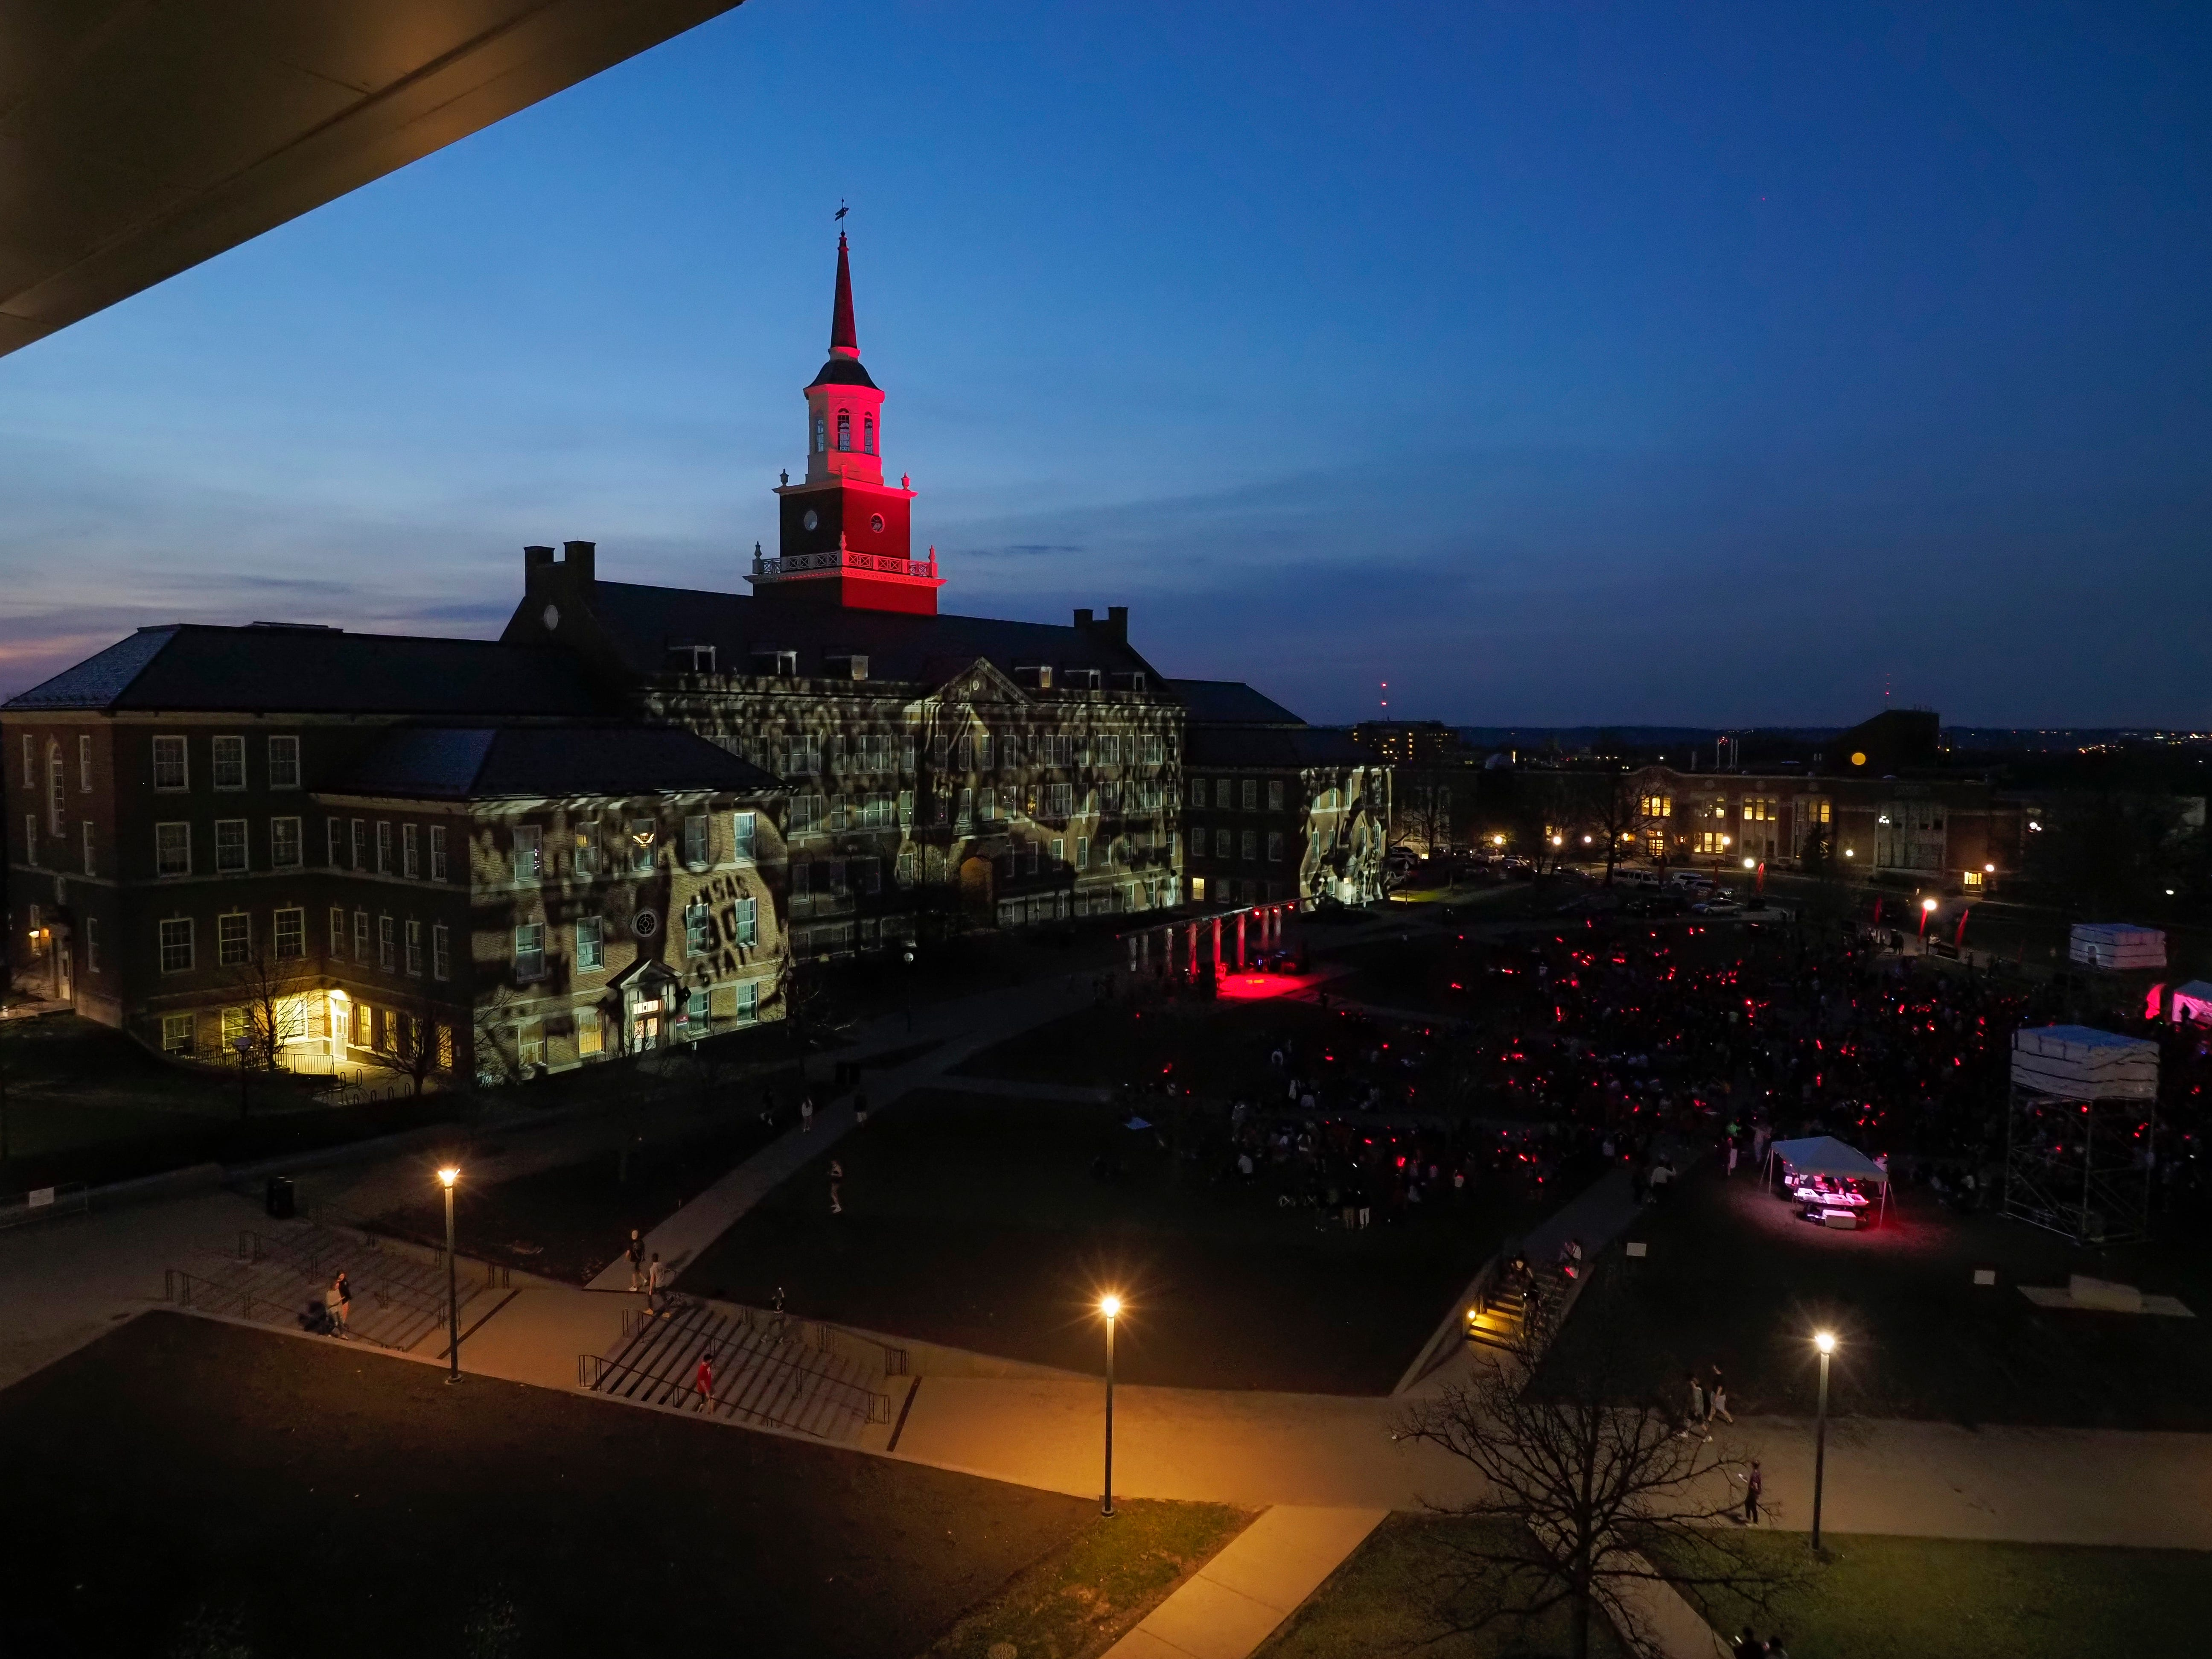 Oscar Robertson image displayed on McMicken Hall during Community Day to celebrate UC's Bicentennial Saturday April 6, 2019 at McMicken Commons on the campus of the University of Cincinnati. Photo by Jay Yocis/University of Cincinnati